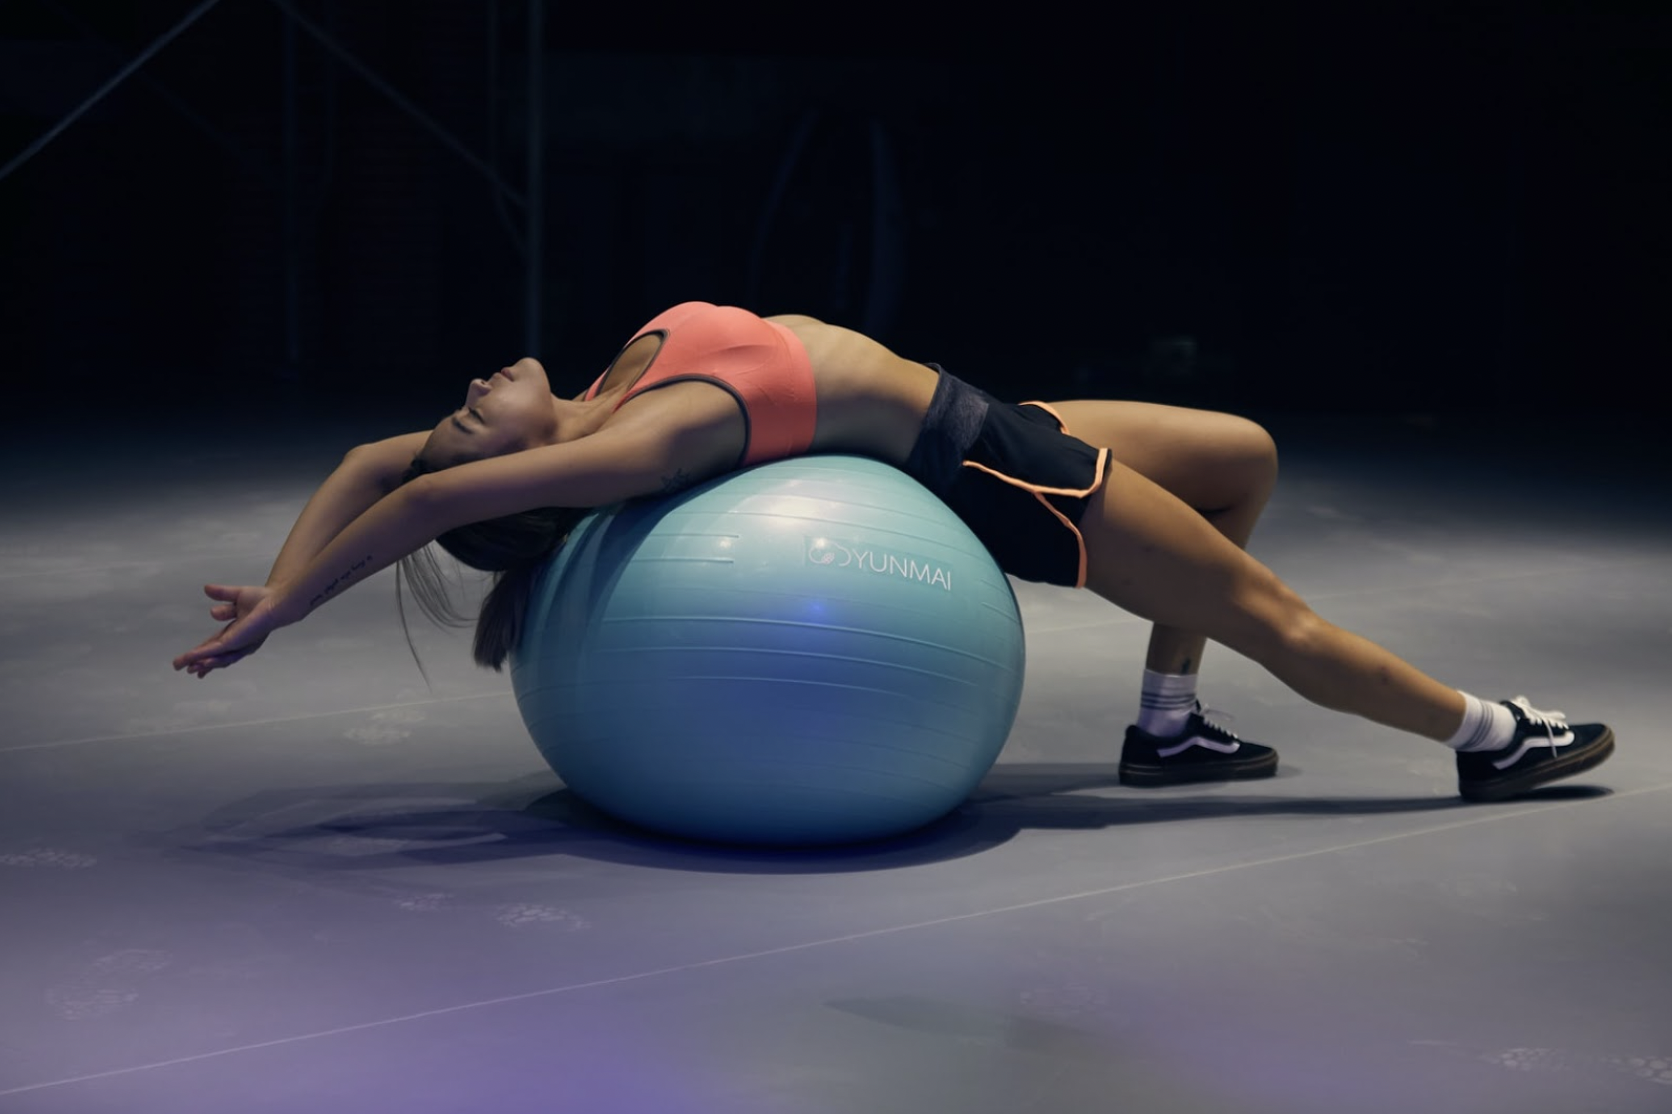 A fitness influencer in apparel from an activewear brand on an exercise ball.